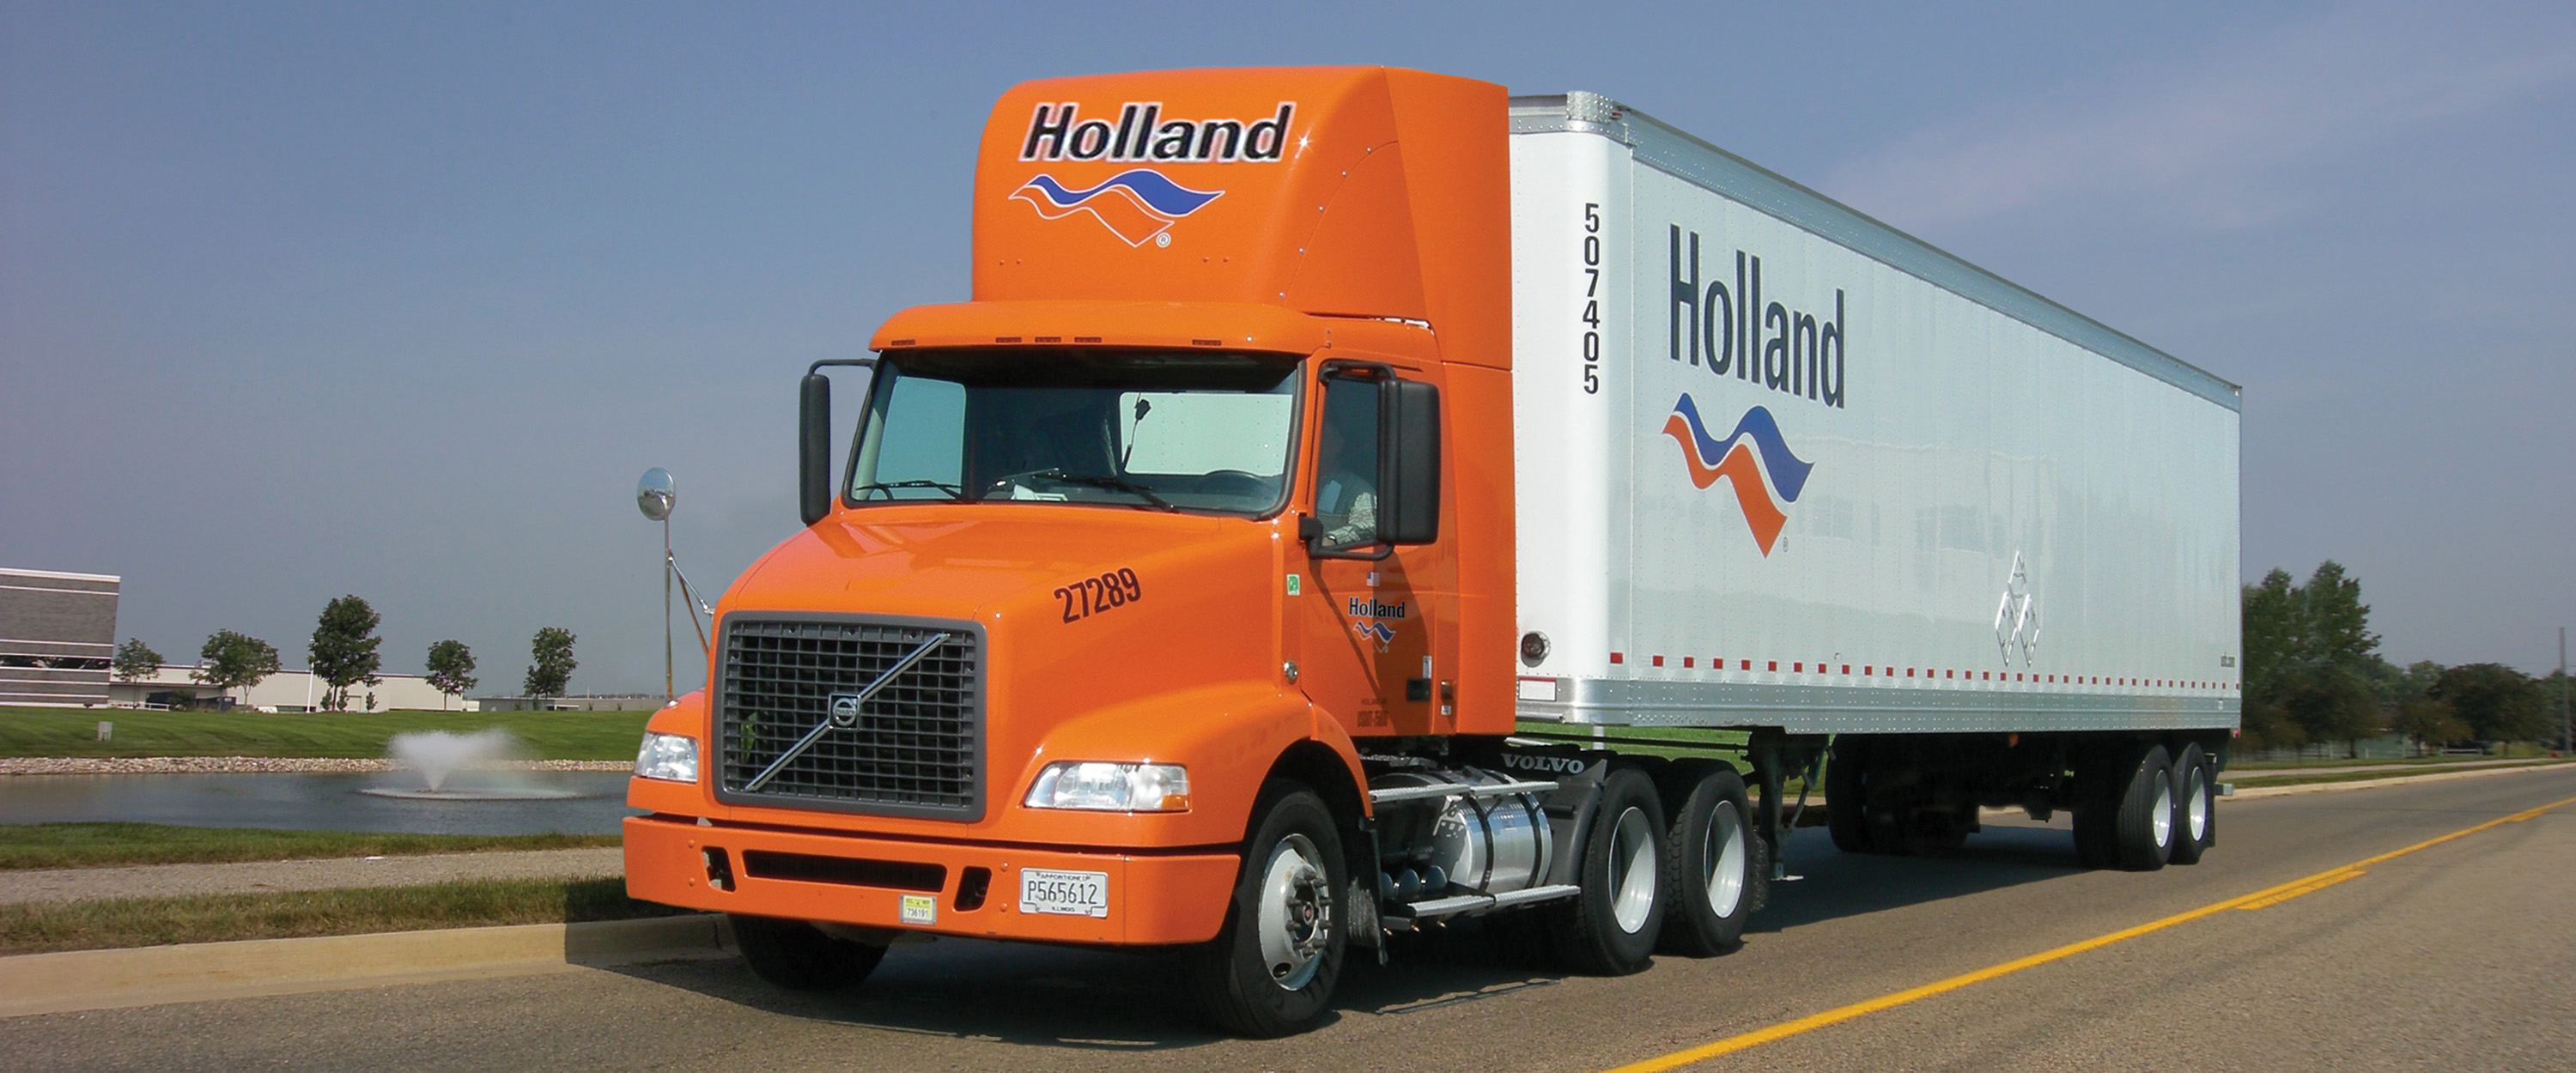 Holland purchases trailer wraps to support Trucking Moves America Forward